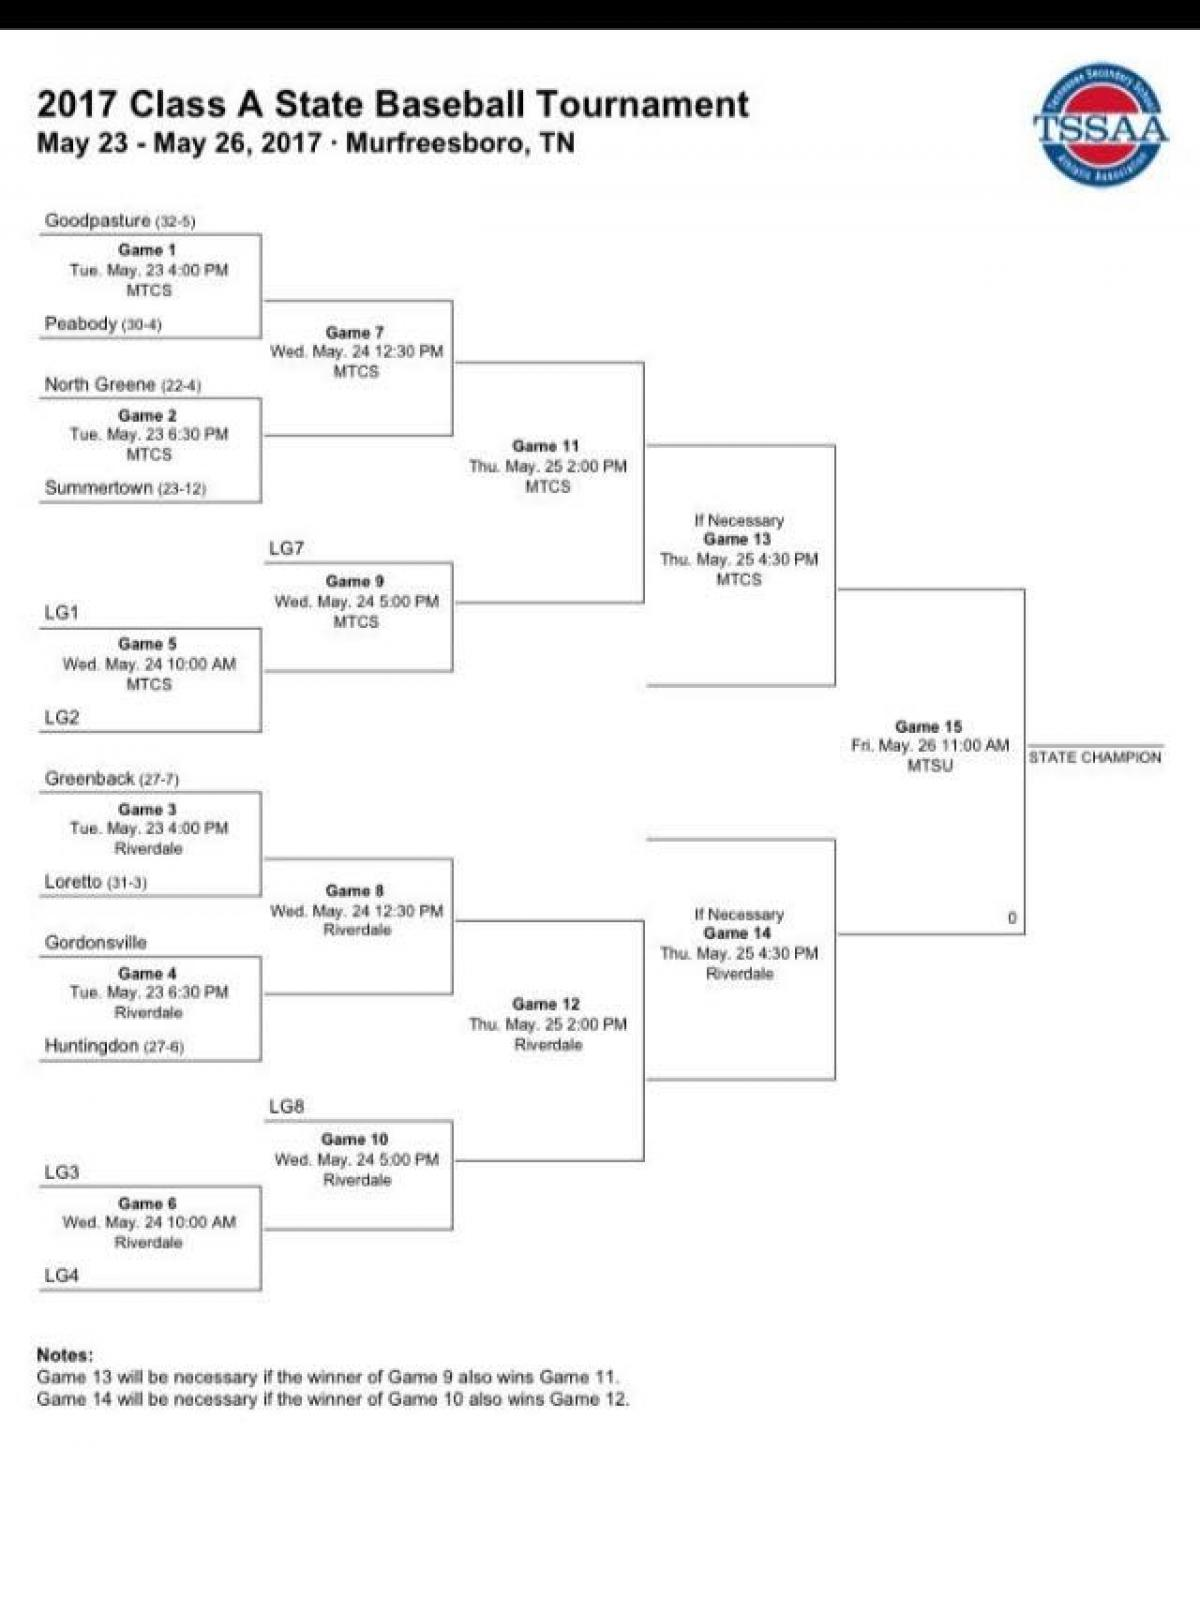 TSSAA State Tournament.